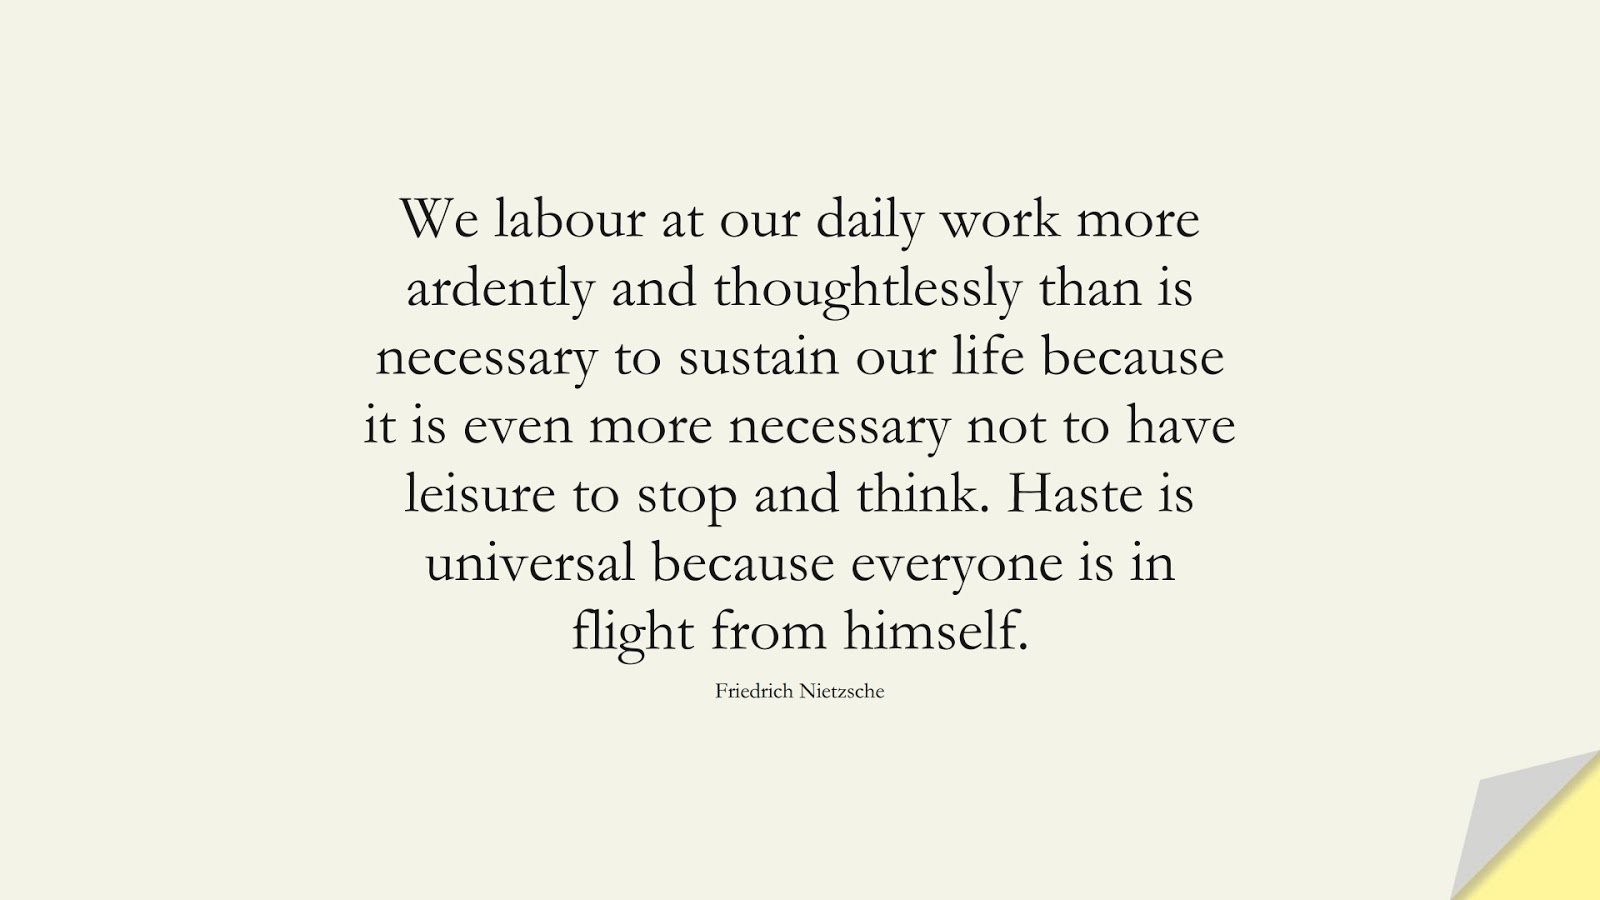 We labour at our daily work more ardently and thoughtlessly than is necessary to sustain our life because it is even more necessary not to have leisure to stop and think. Haste is universal because everyone is in flight from himself. (Friedrich Nietzsche);  #AnxietyQuotes